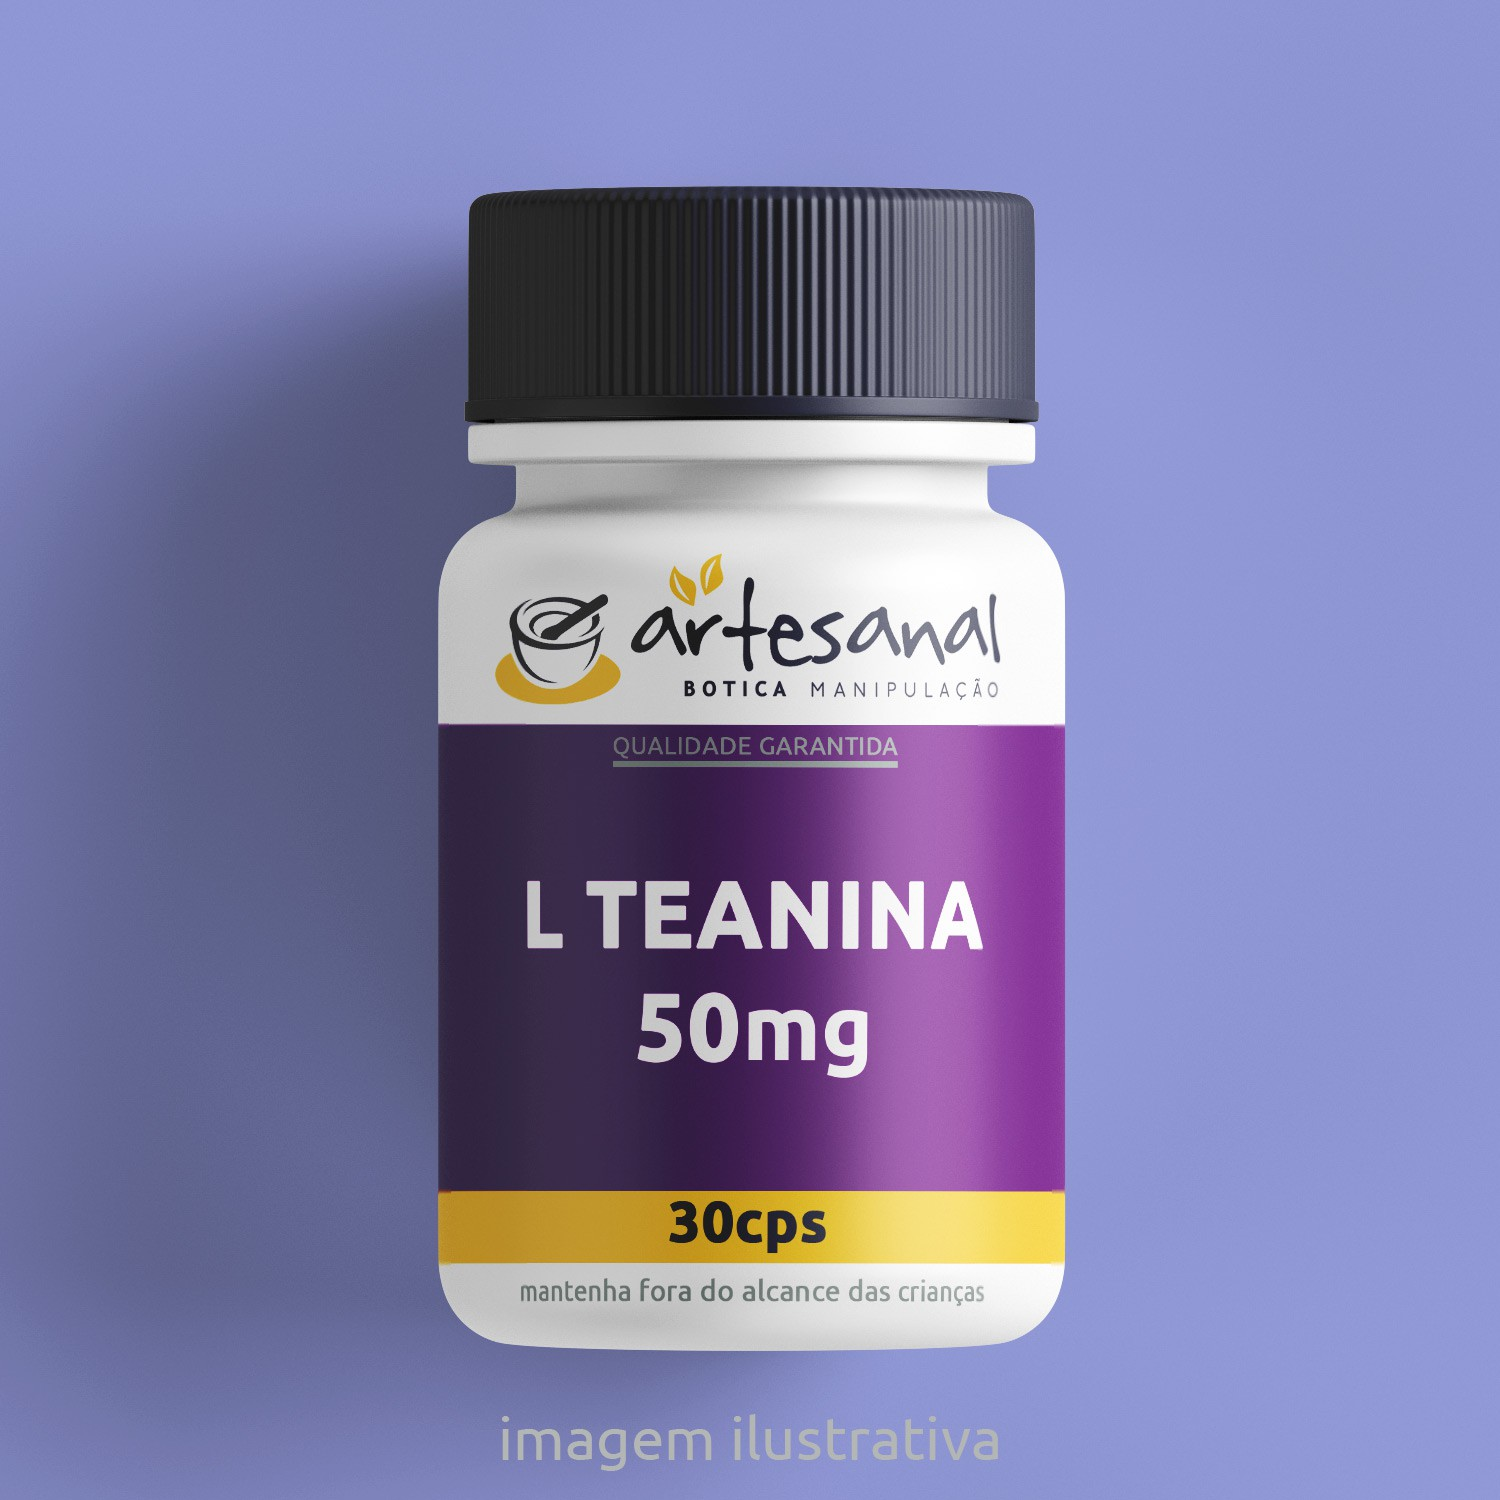 L Teanina 50mg 30cps